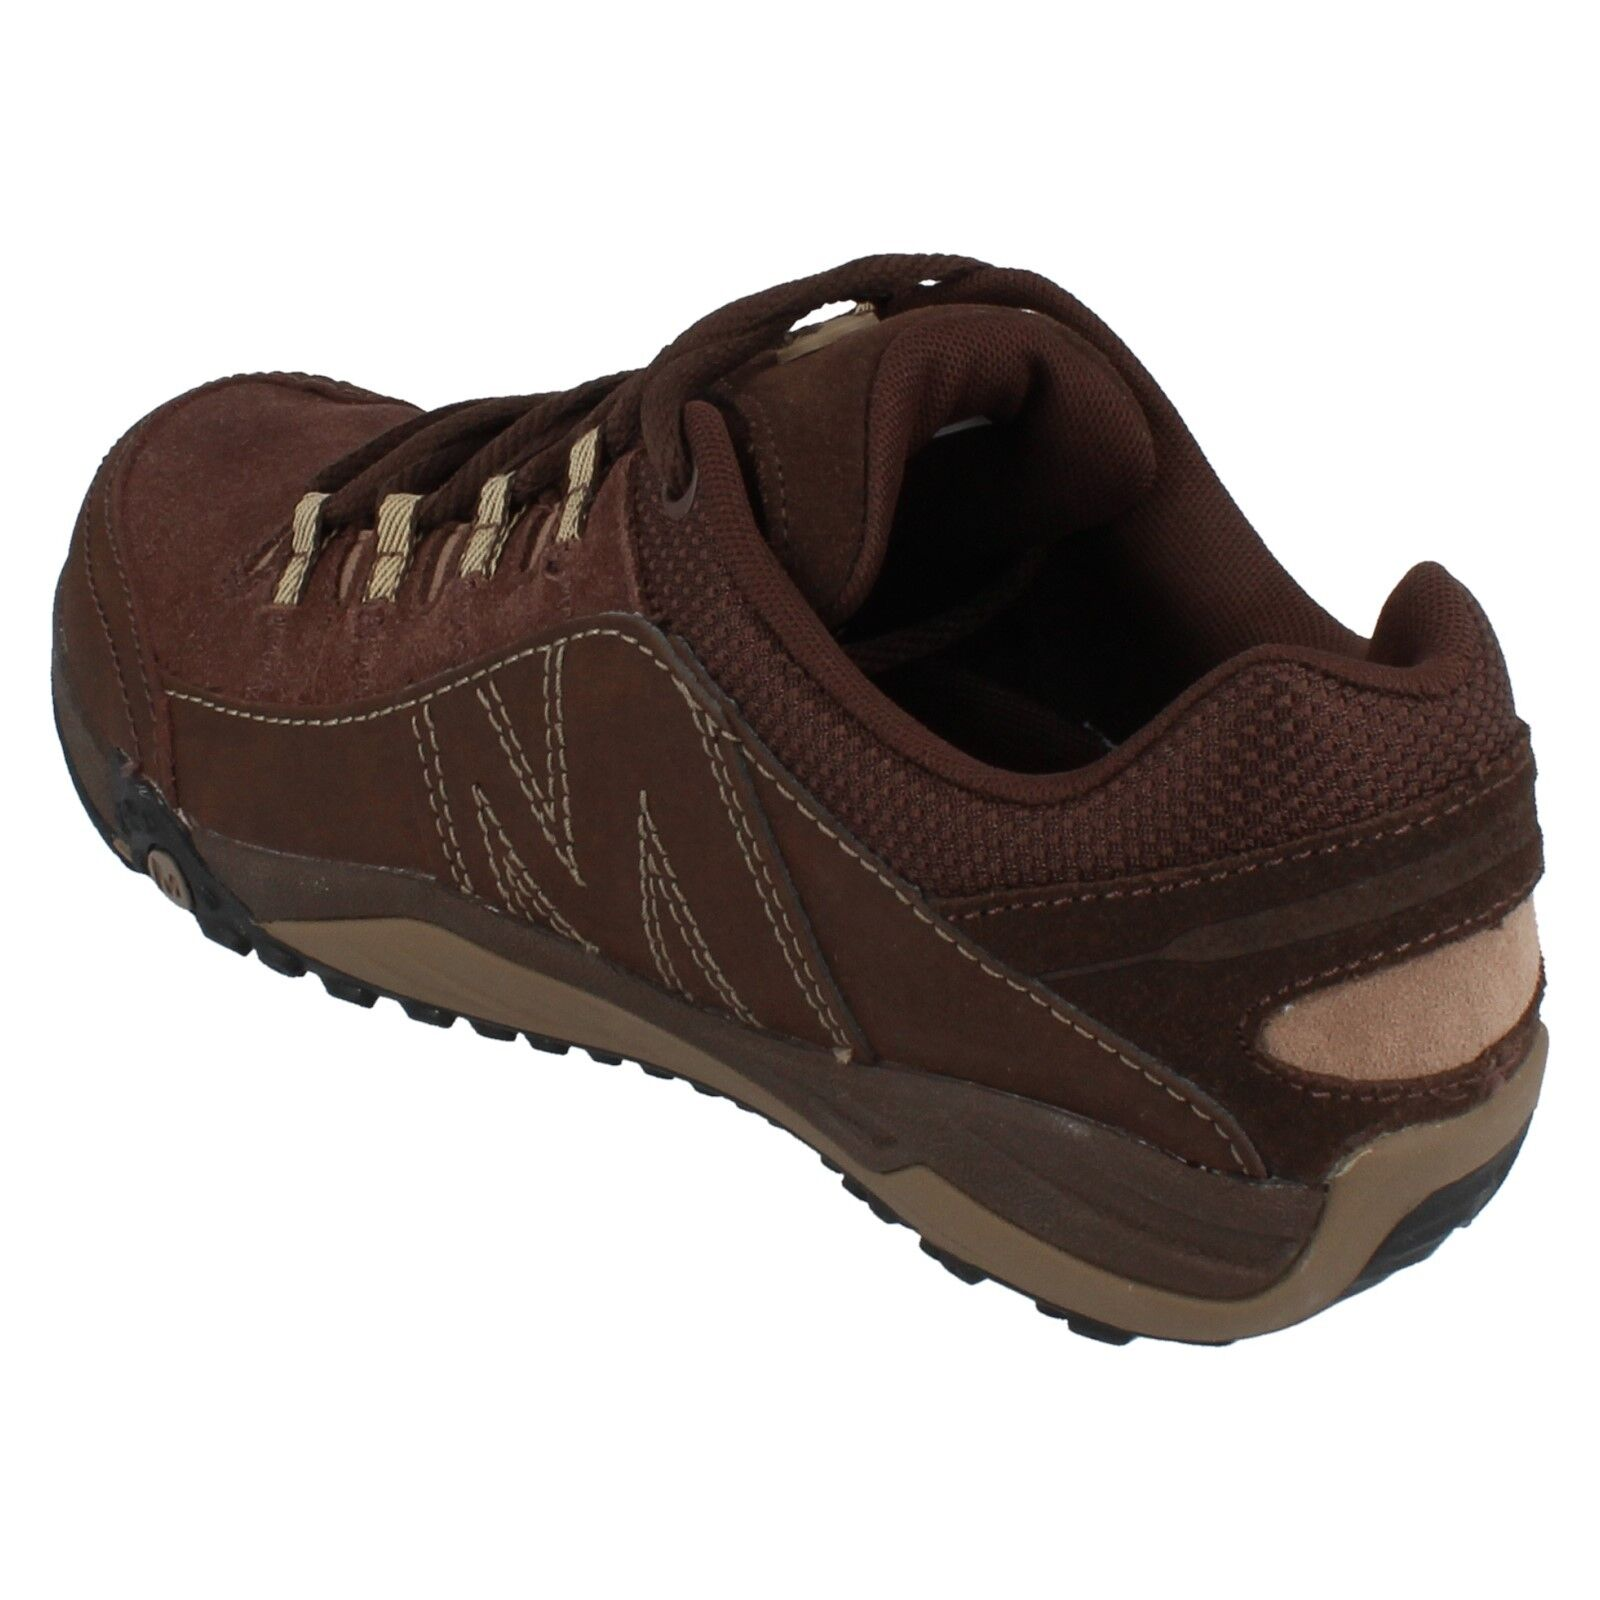 Mens Merrell Clay/Brown Trainers - HELIXER EVO - J23495